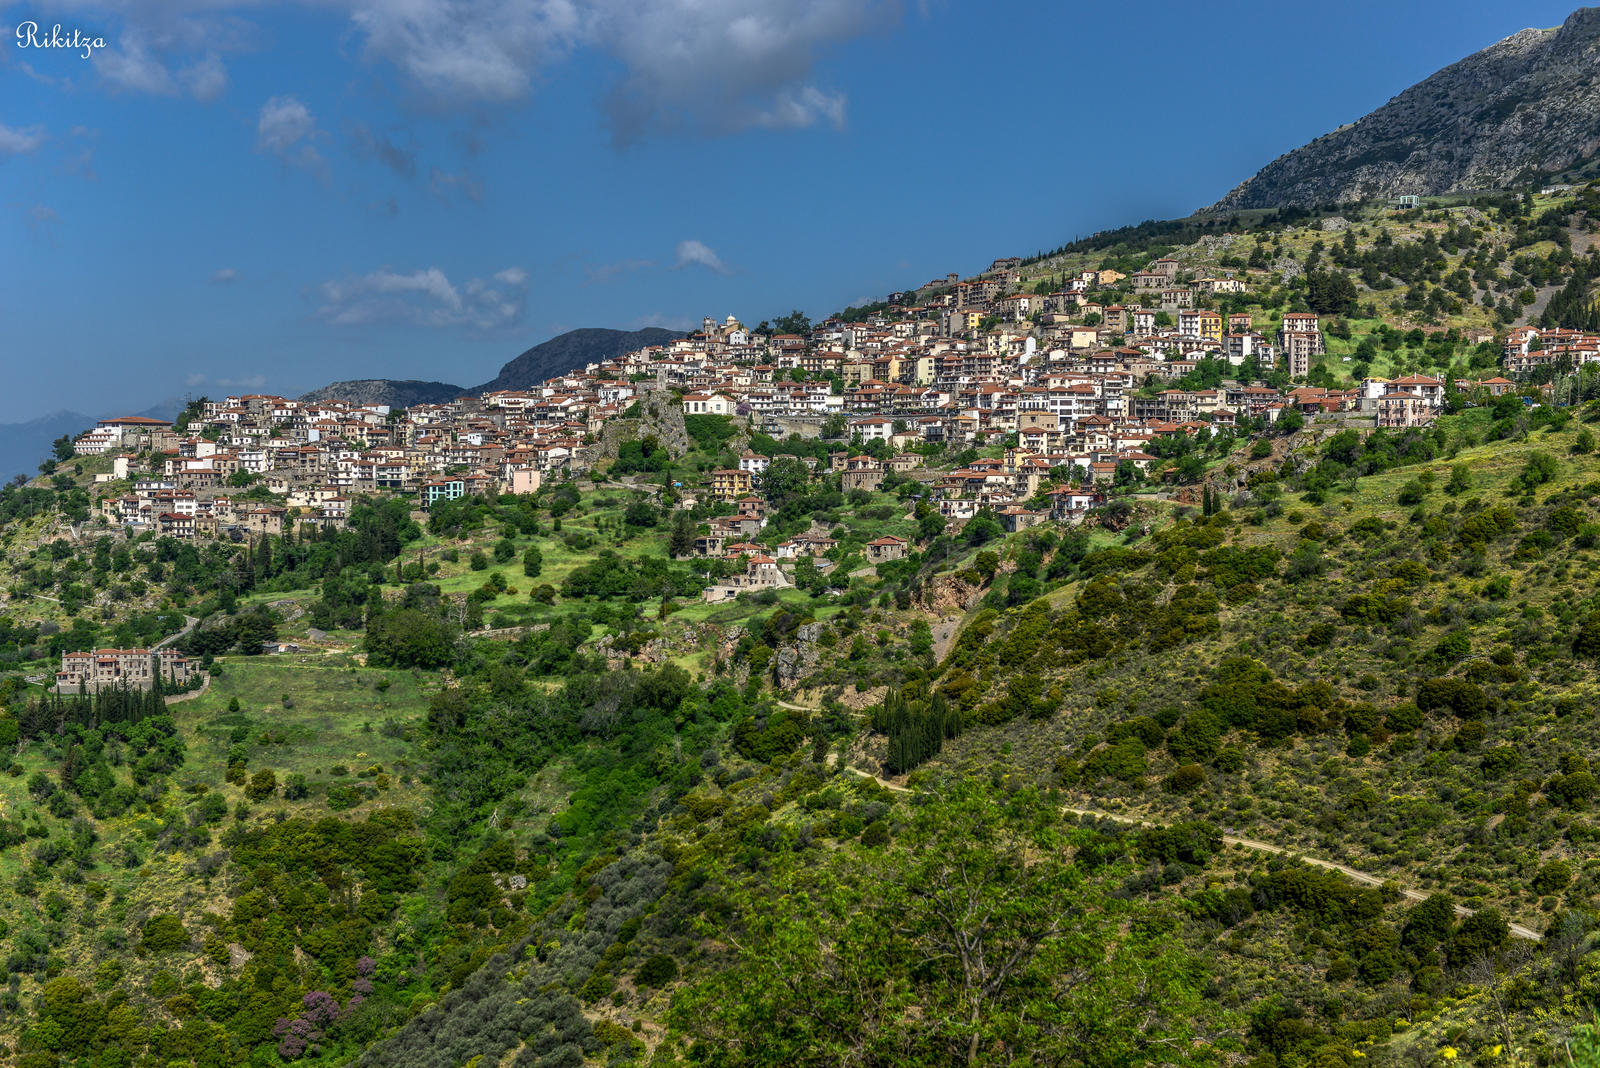 Delphi Greece  city photos : Arachova Delphi GREECE by Rikitza on DeviantArt